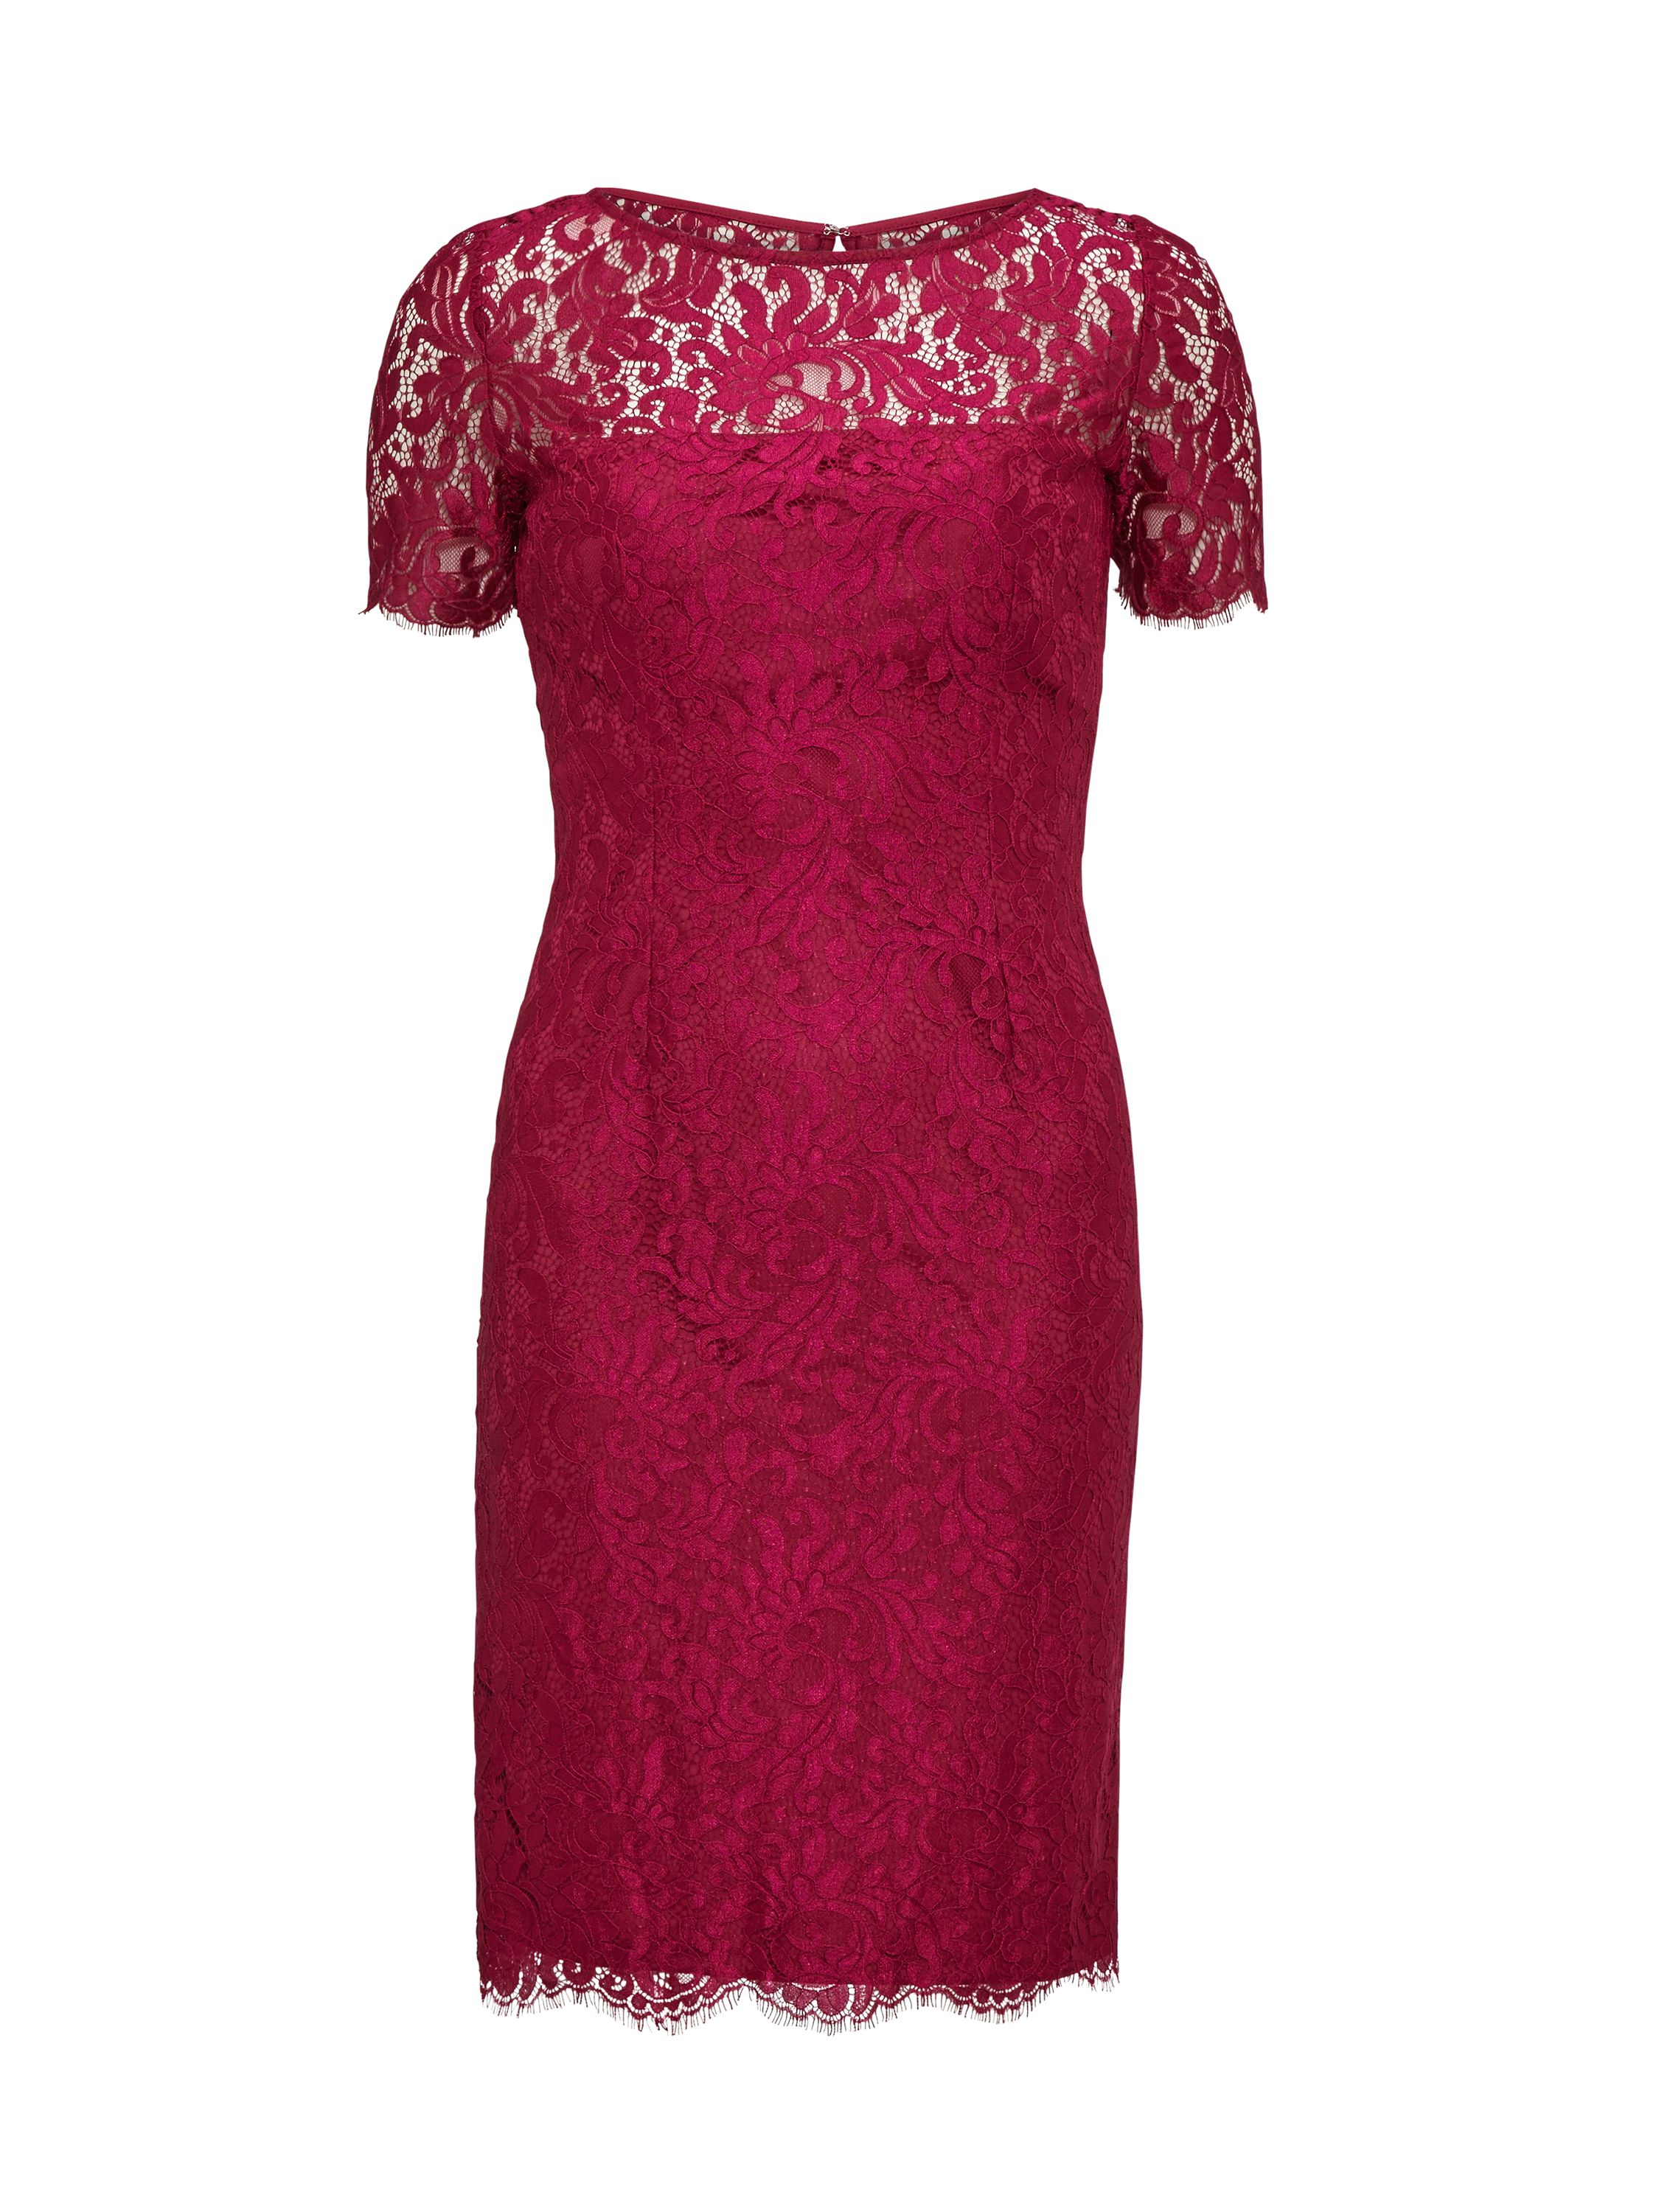 Gina Bacconi Bright Wine Scallop Eyelash Lace Dress, Red